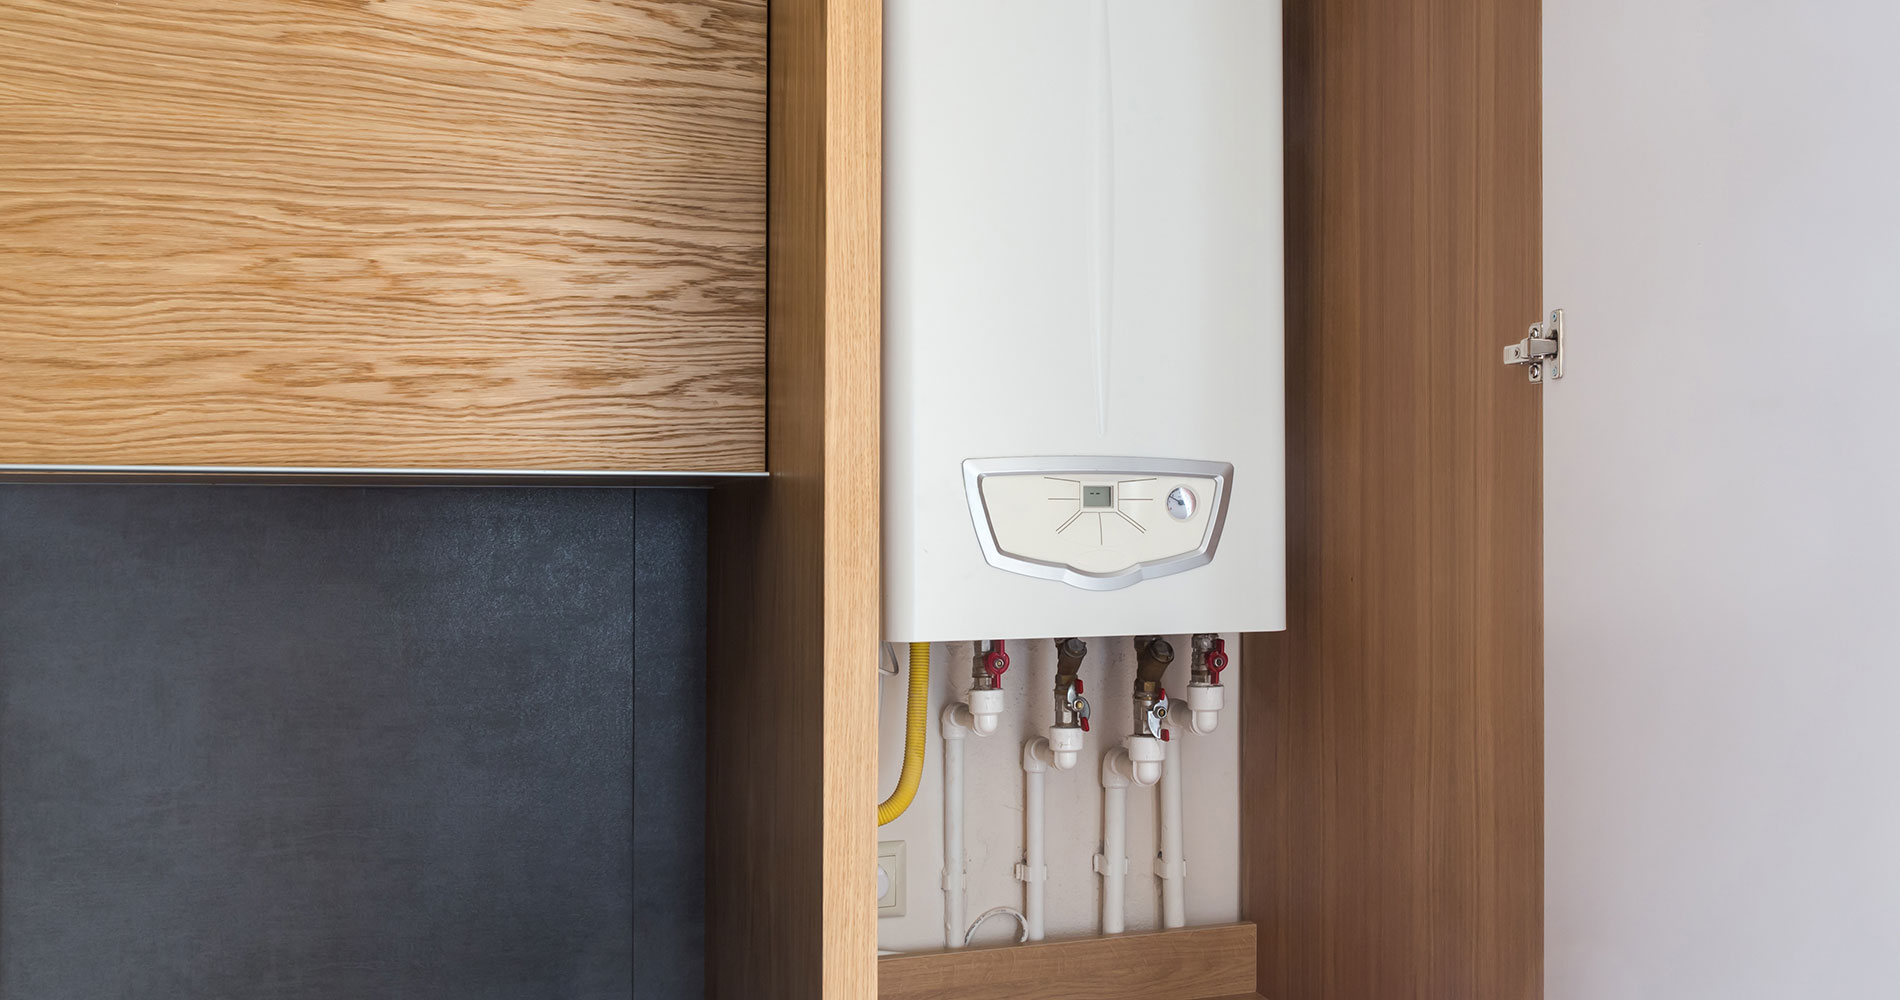 HOW TO HIDE A BOILER IN KITCHEN